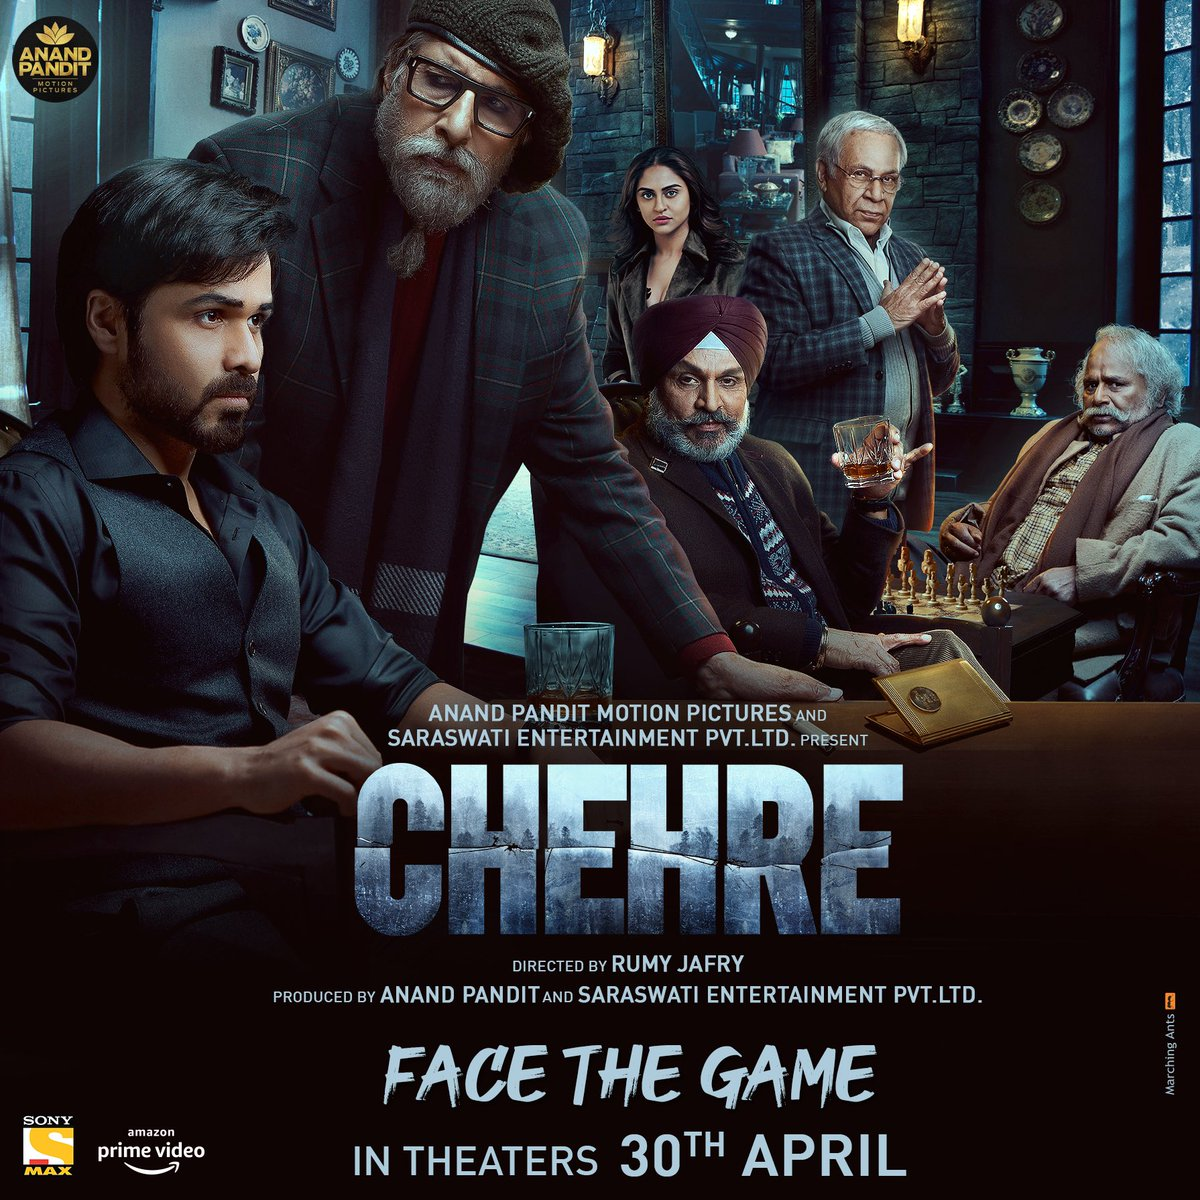 #Chehre Uncover the real #Chehre, the much-awaited mystery-thriller, in theatres on 30th April 2021. #FaceTheGame @SrBachchan @emraanhashmi @anandpandit63 #RumyJafry @annukapoor_ @krystledsouza @SiddhanthKapoor #RaghubirYadav #DhritimanChatterjee #SaraswatiFilms @apmpictures